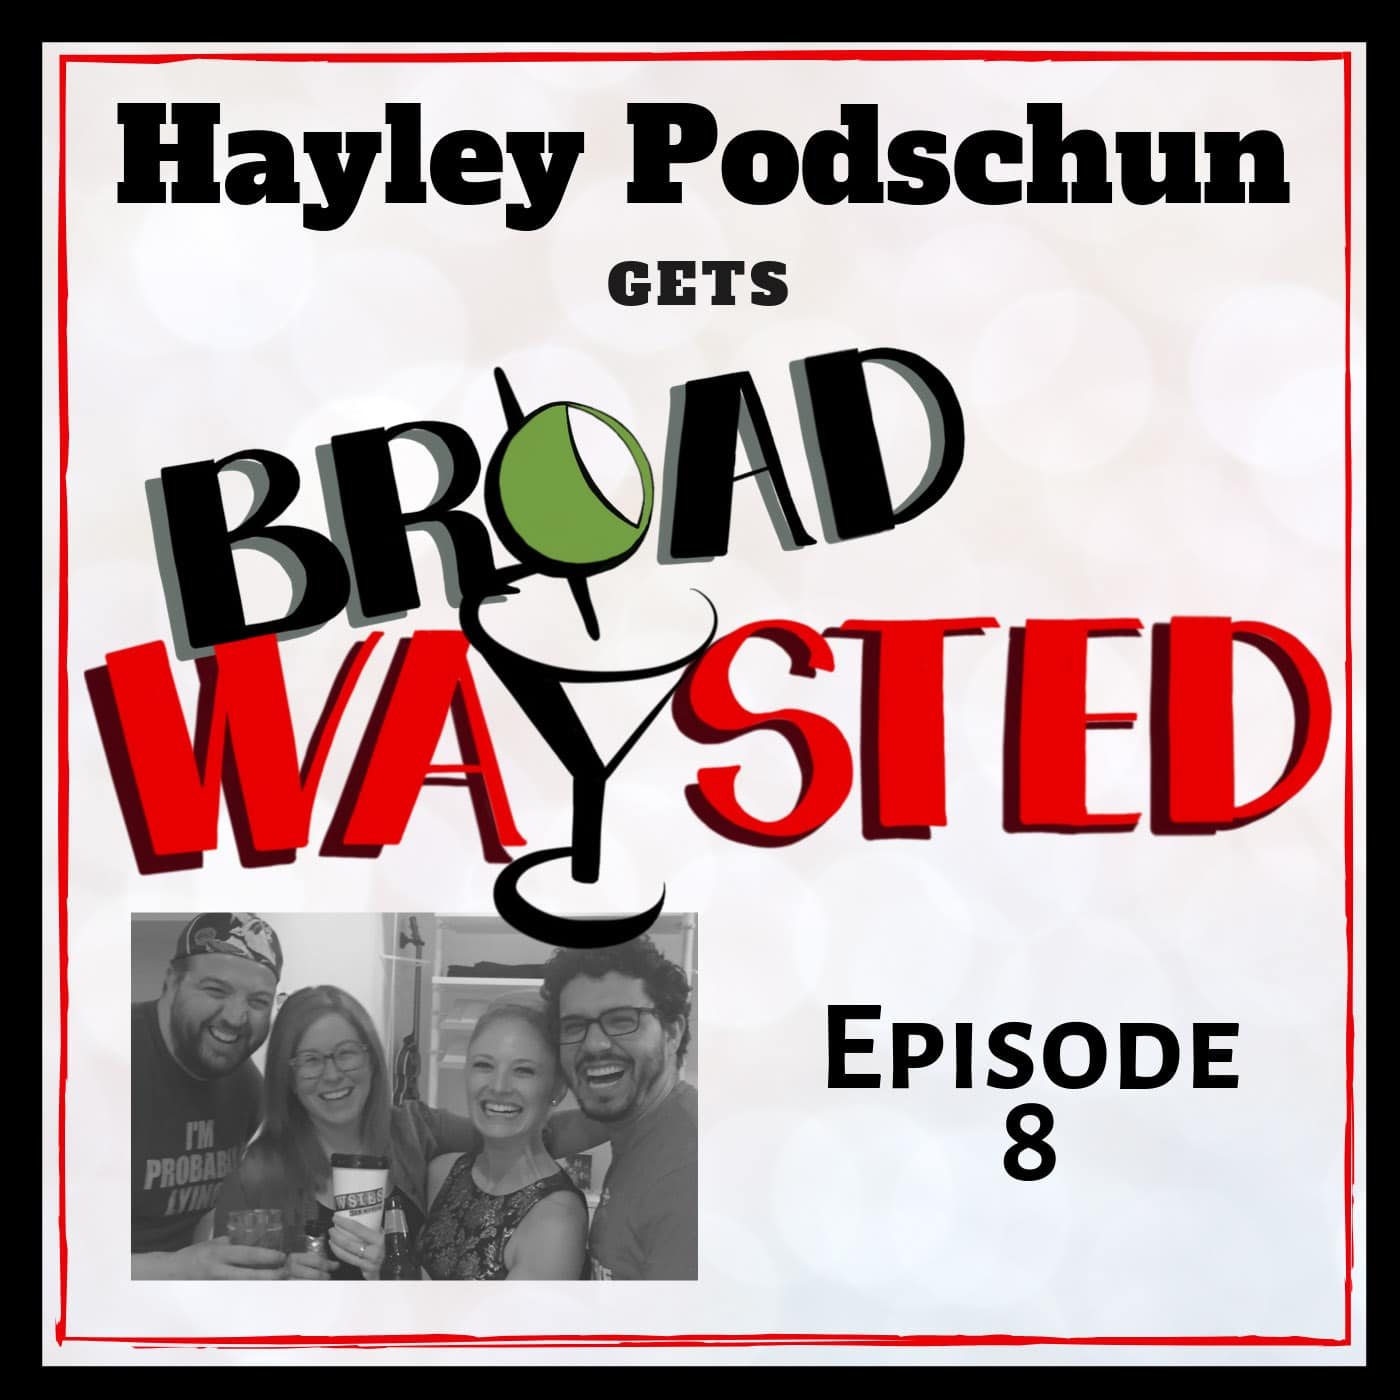 Broadwaysted Ep 8 Hayley Podschun